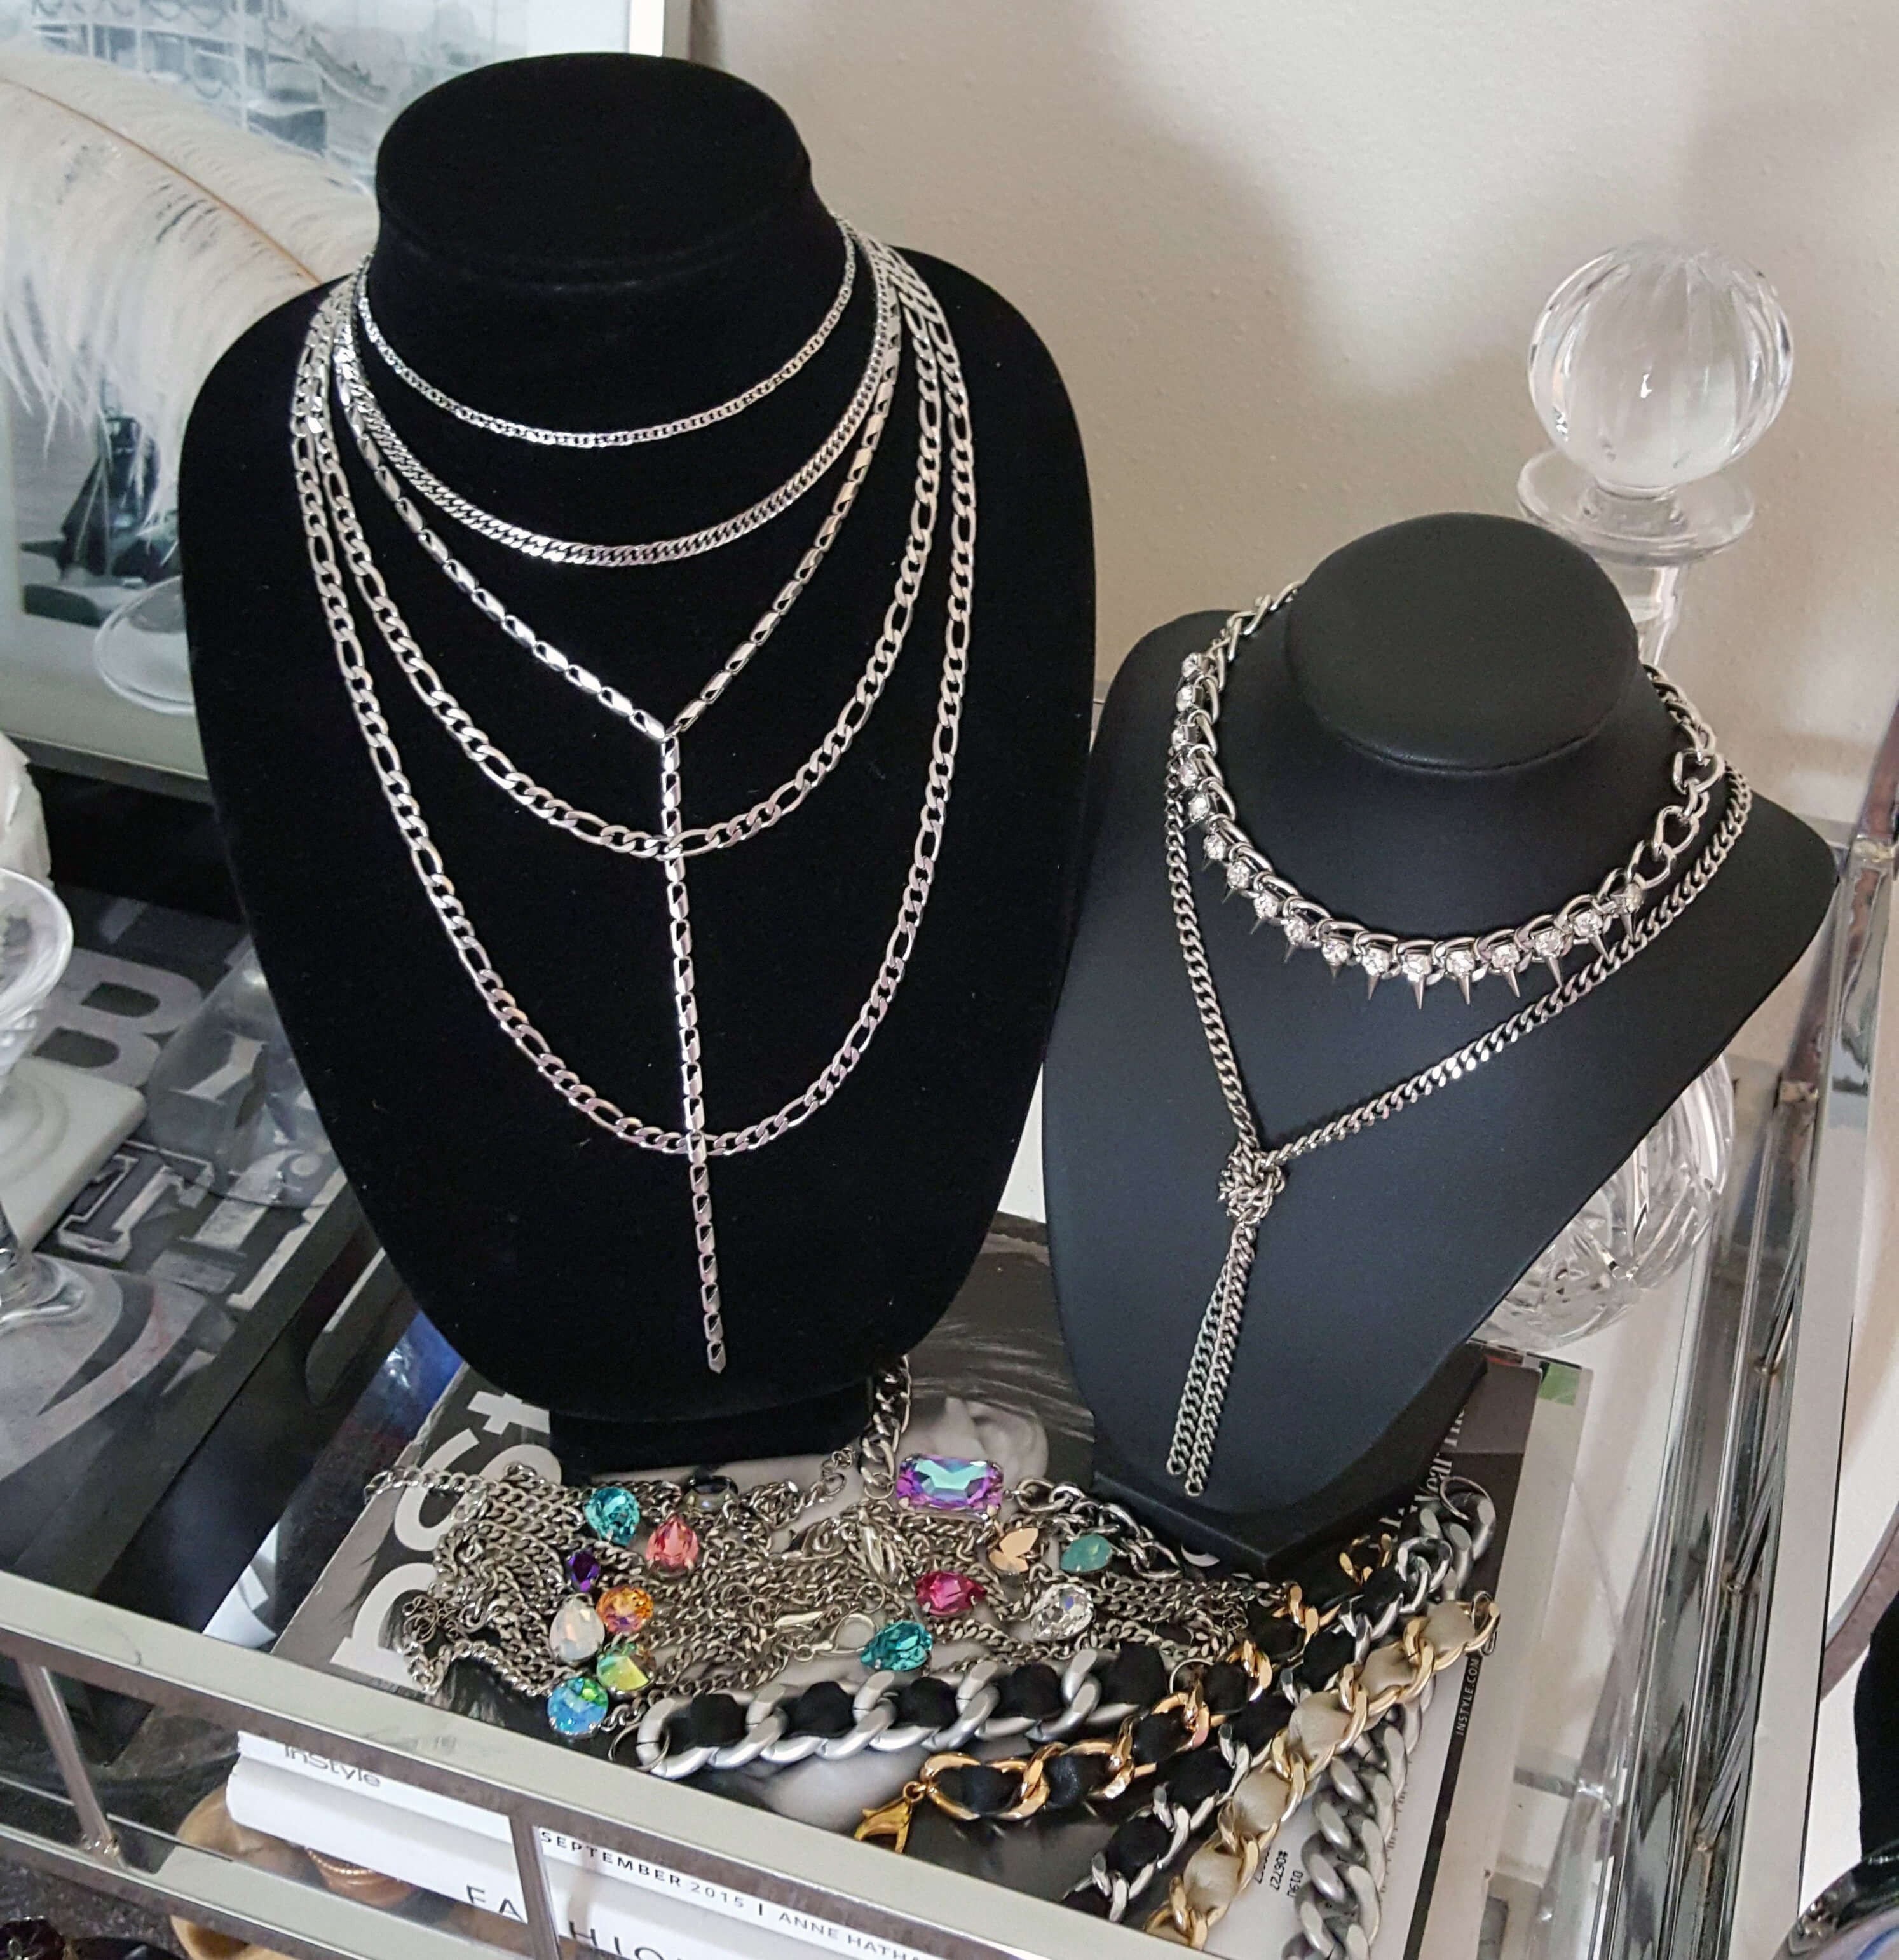 Stainless steel chain necklaces